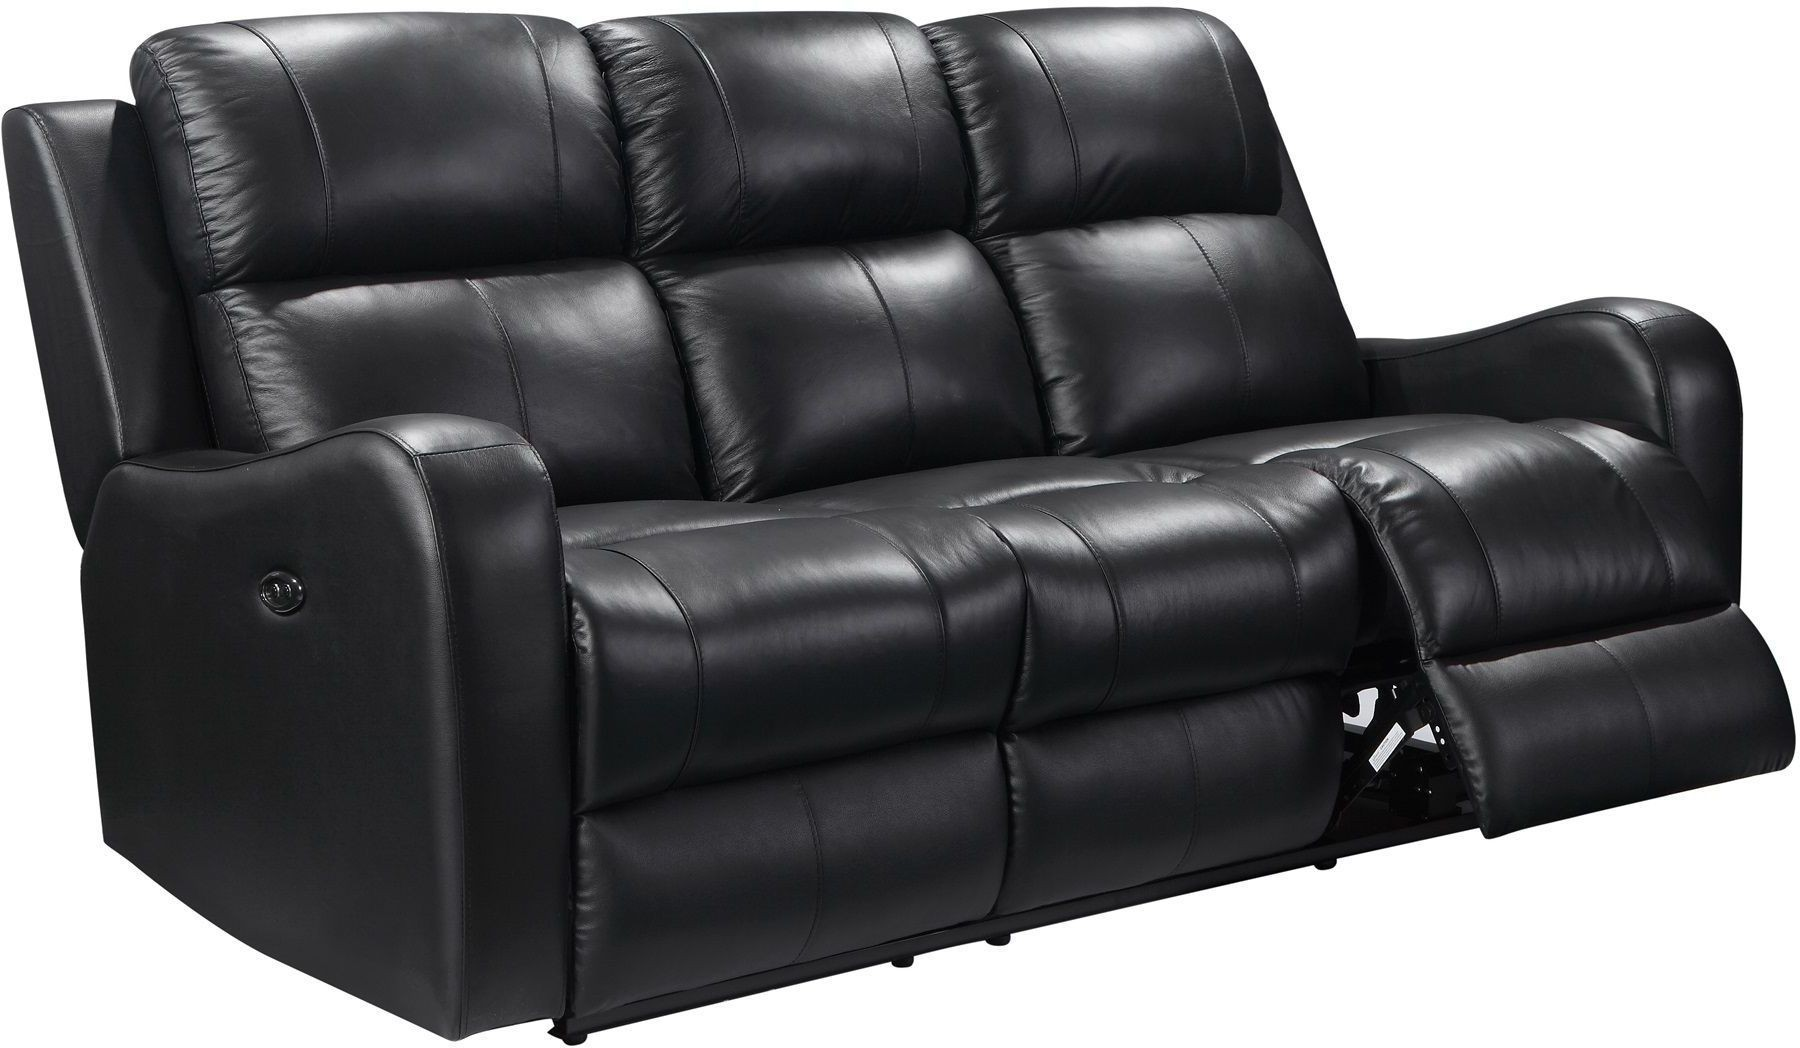 Shae Cortana Black Leather Power Reclining Sofa From Leather Italia